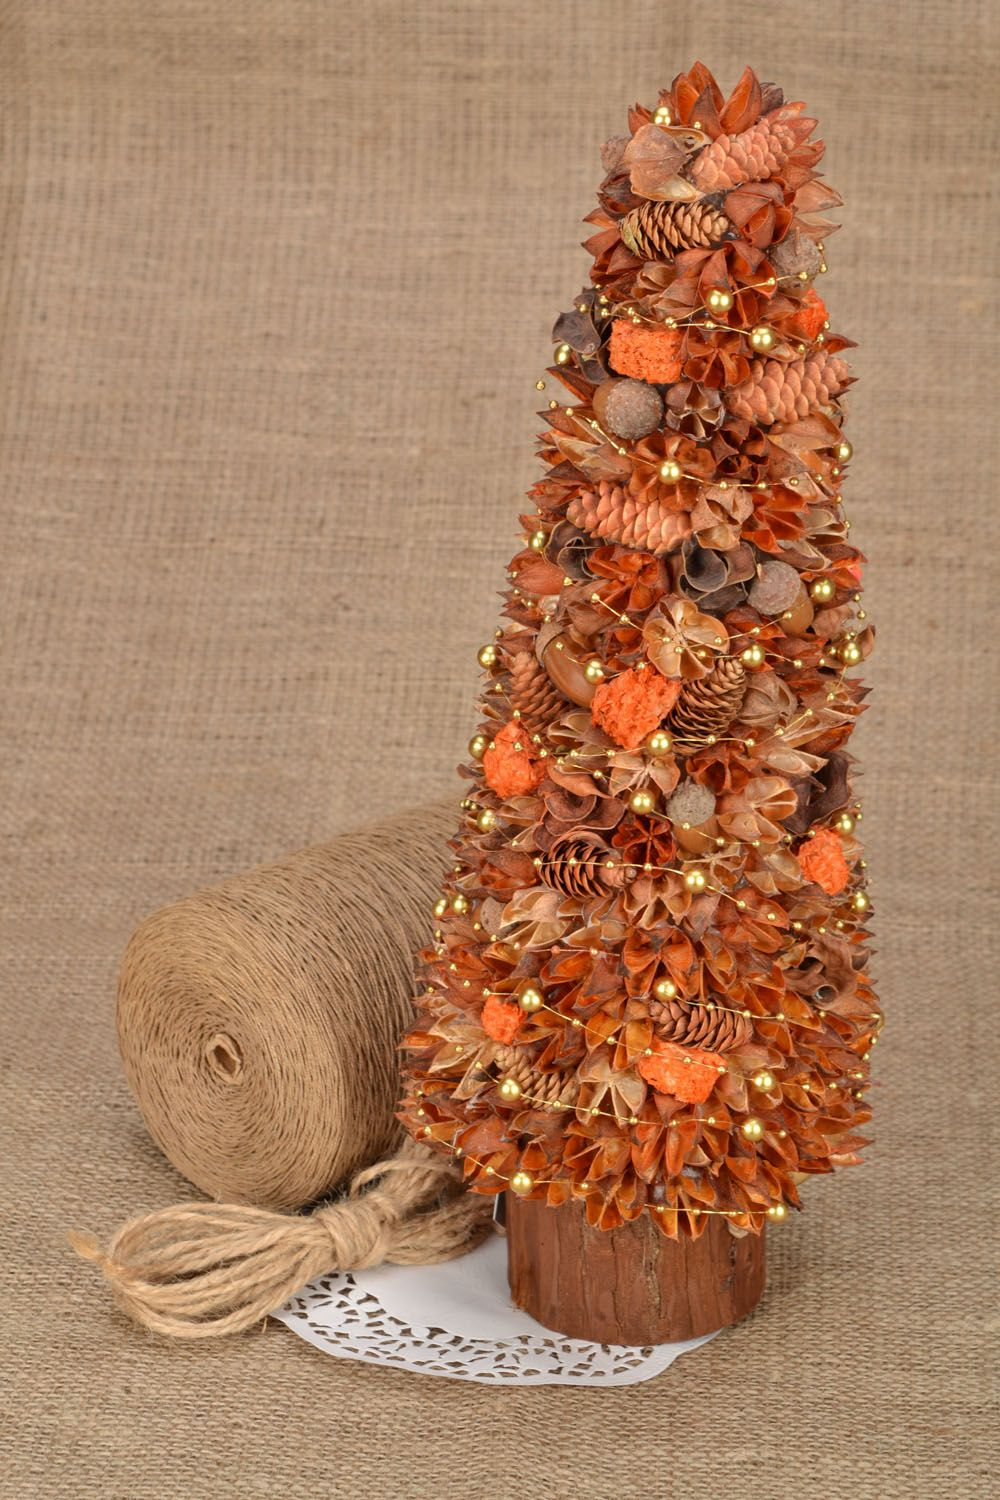 Decorative tree with natural materials photo 1